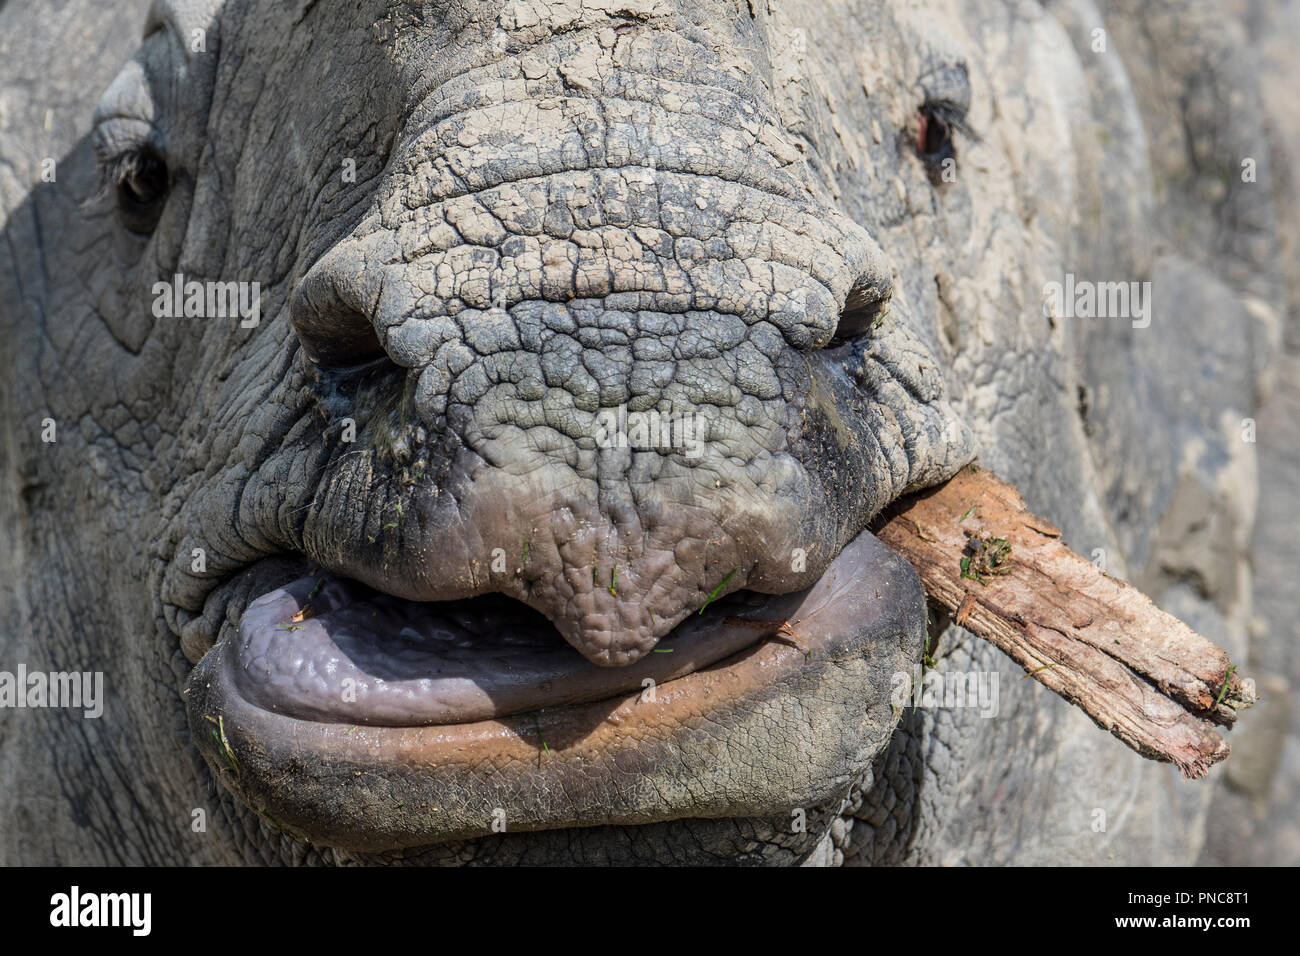 Indian rhinoceros (Rhinoceros unicornis) chewing piece of wood, close up of upper lip, tongue and snout - Stock Image